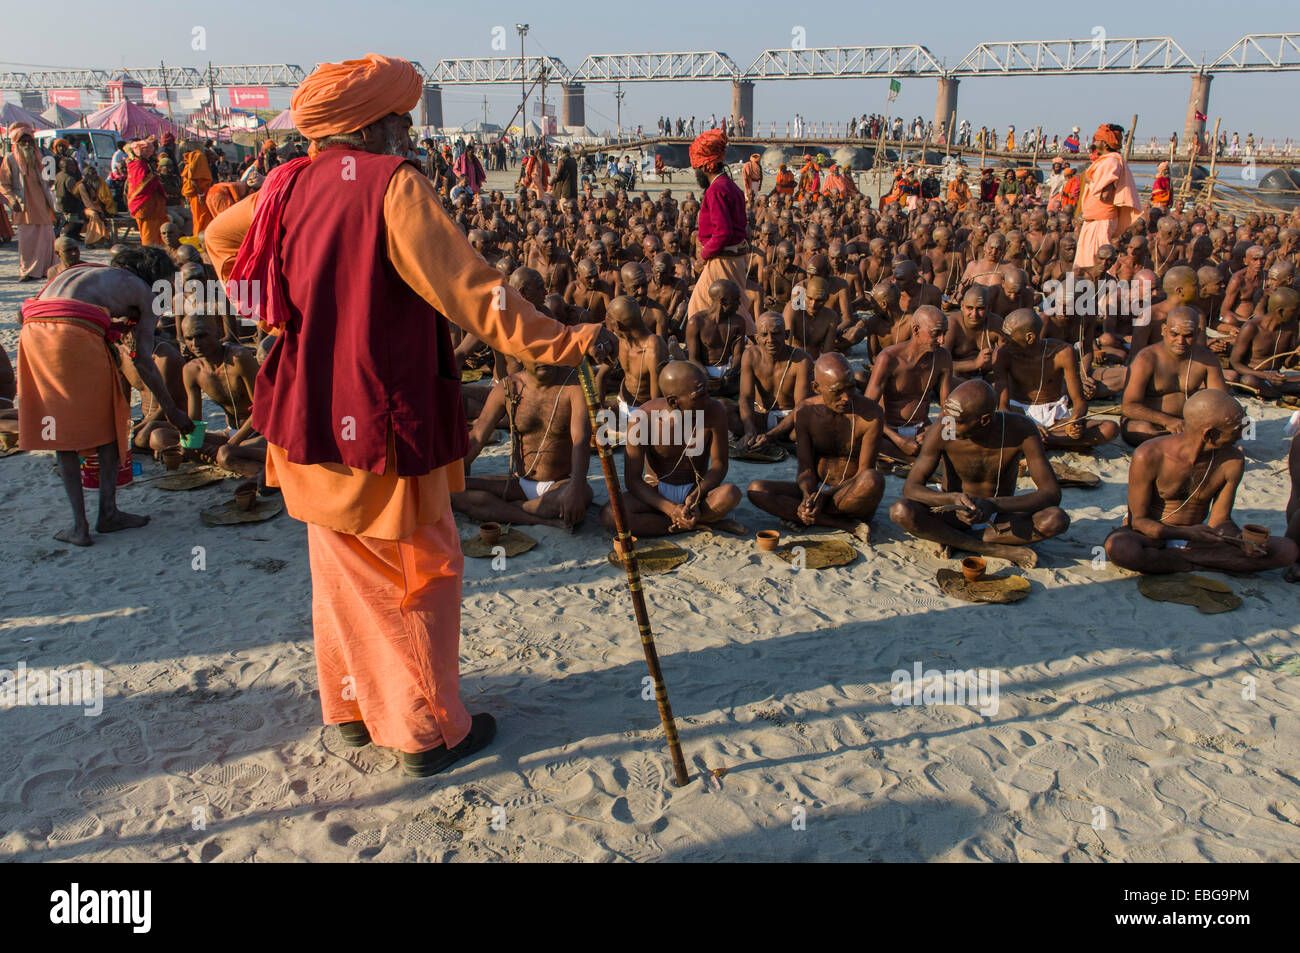 Taking their first meal in their new lives as part of the initiation of new sadhus at the Sangam, the confluence - Stock Image